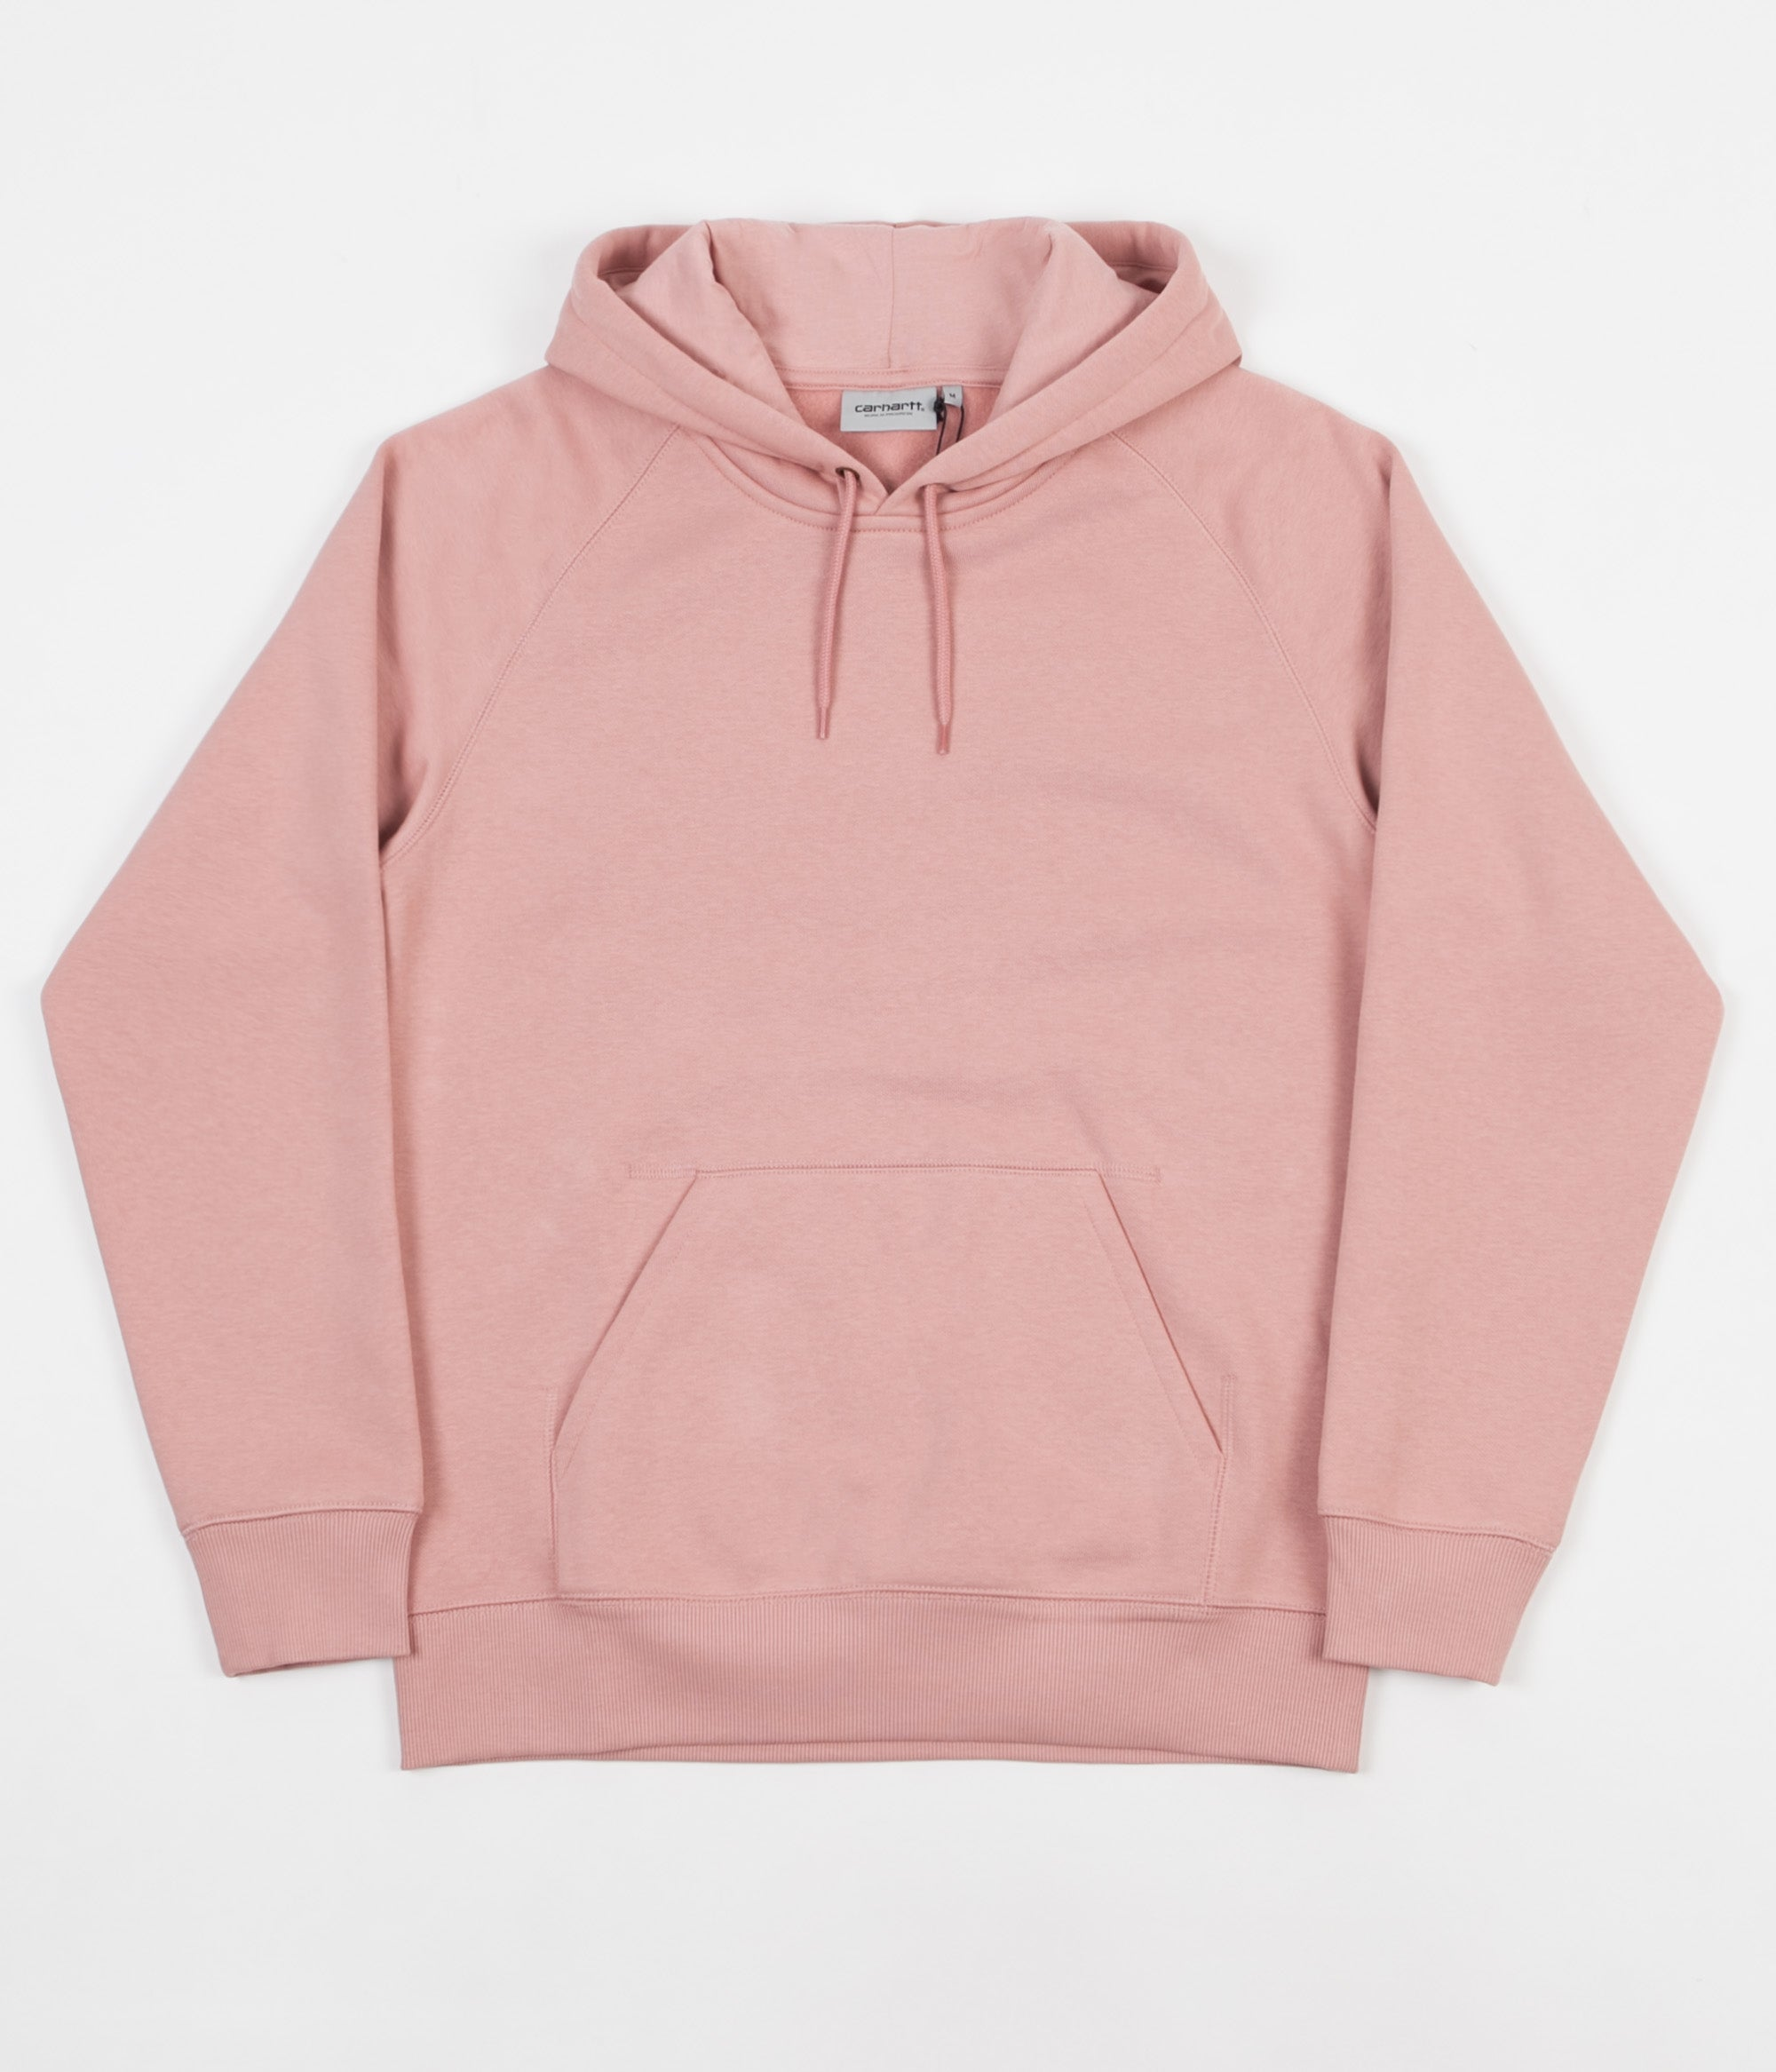 Carhartt Chase Hoodie - Soft Rose / Gold